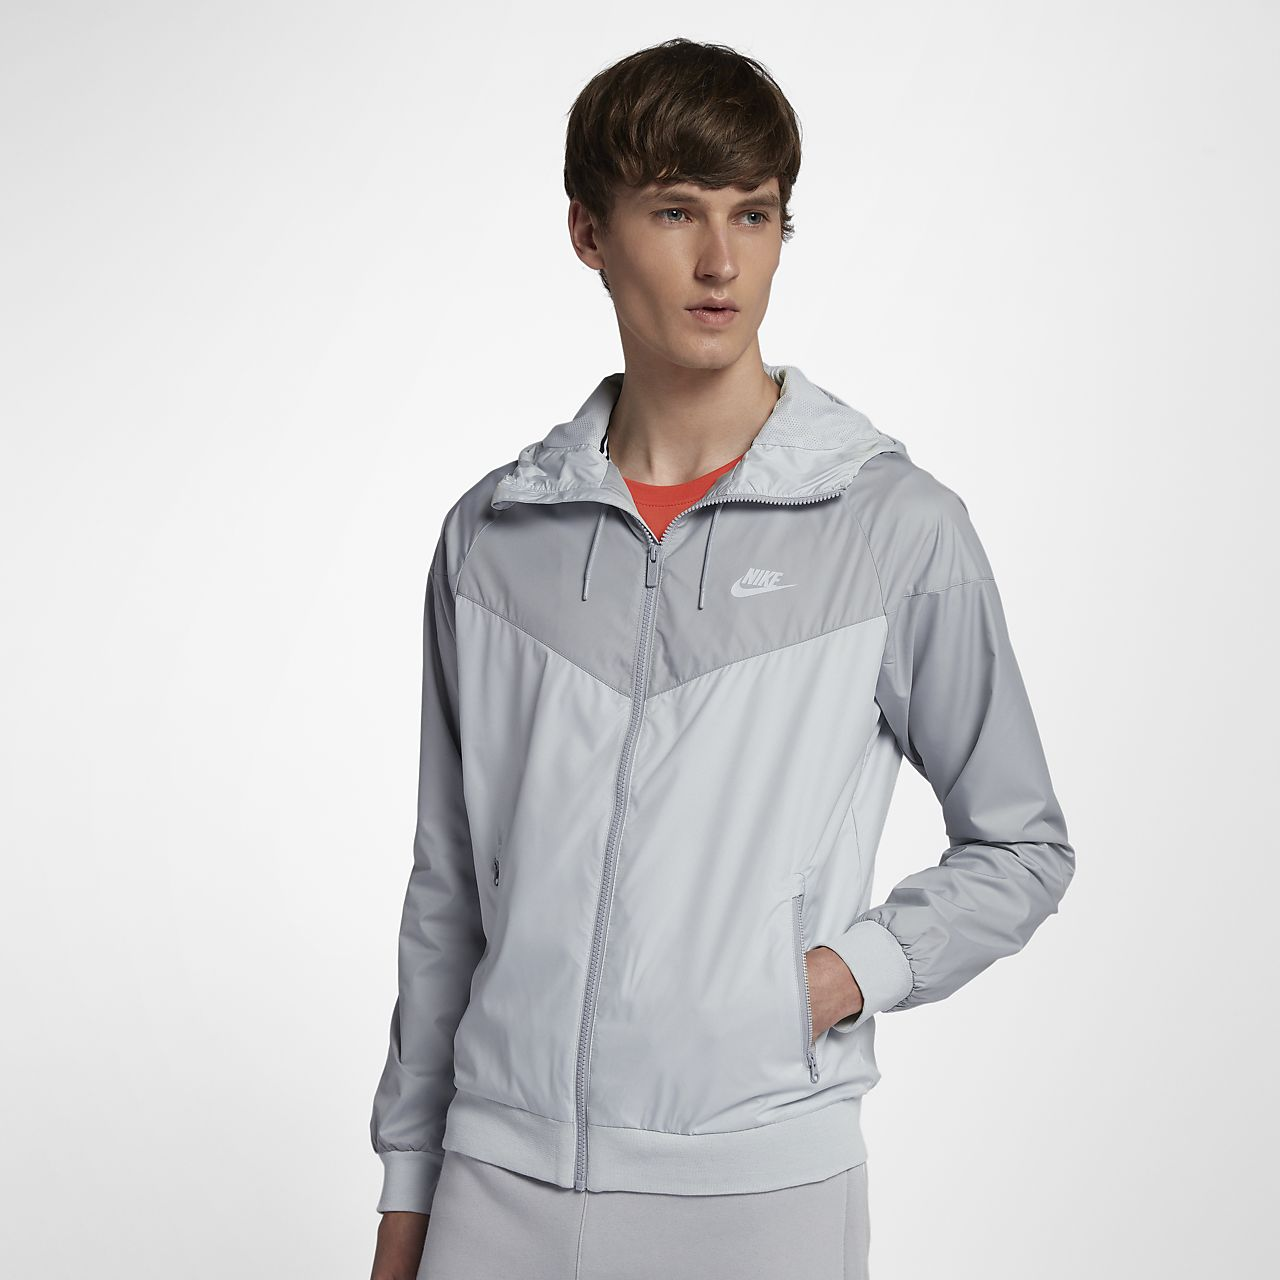 eefd066bacf4 Low Resolution Nike Sportswear Windrunner Men s Jacket Nike Sportswear  Windrunner Men s Jacket